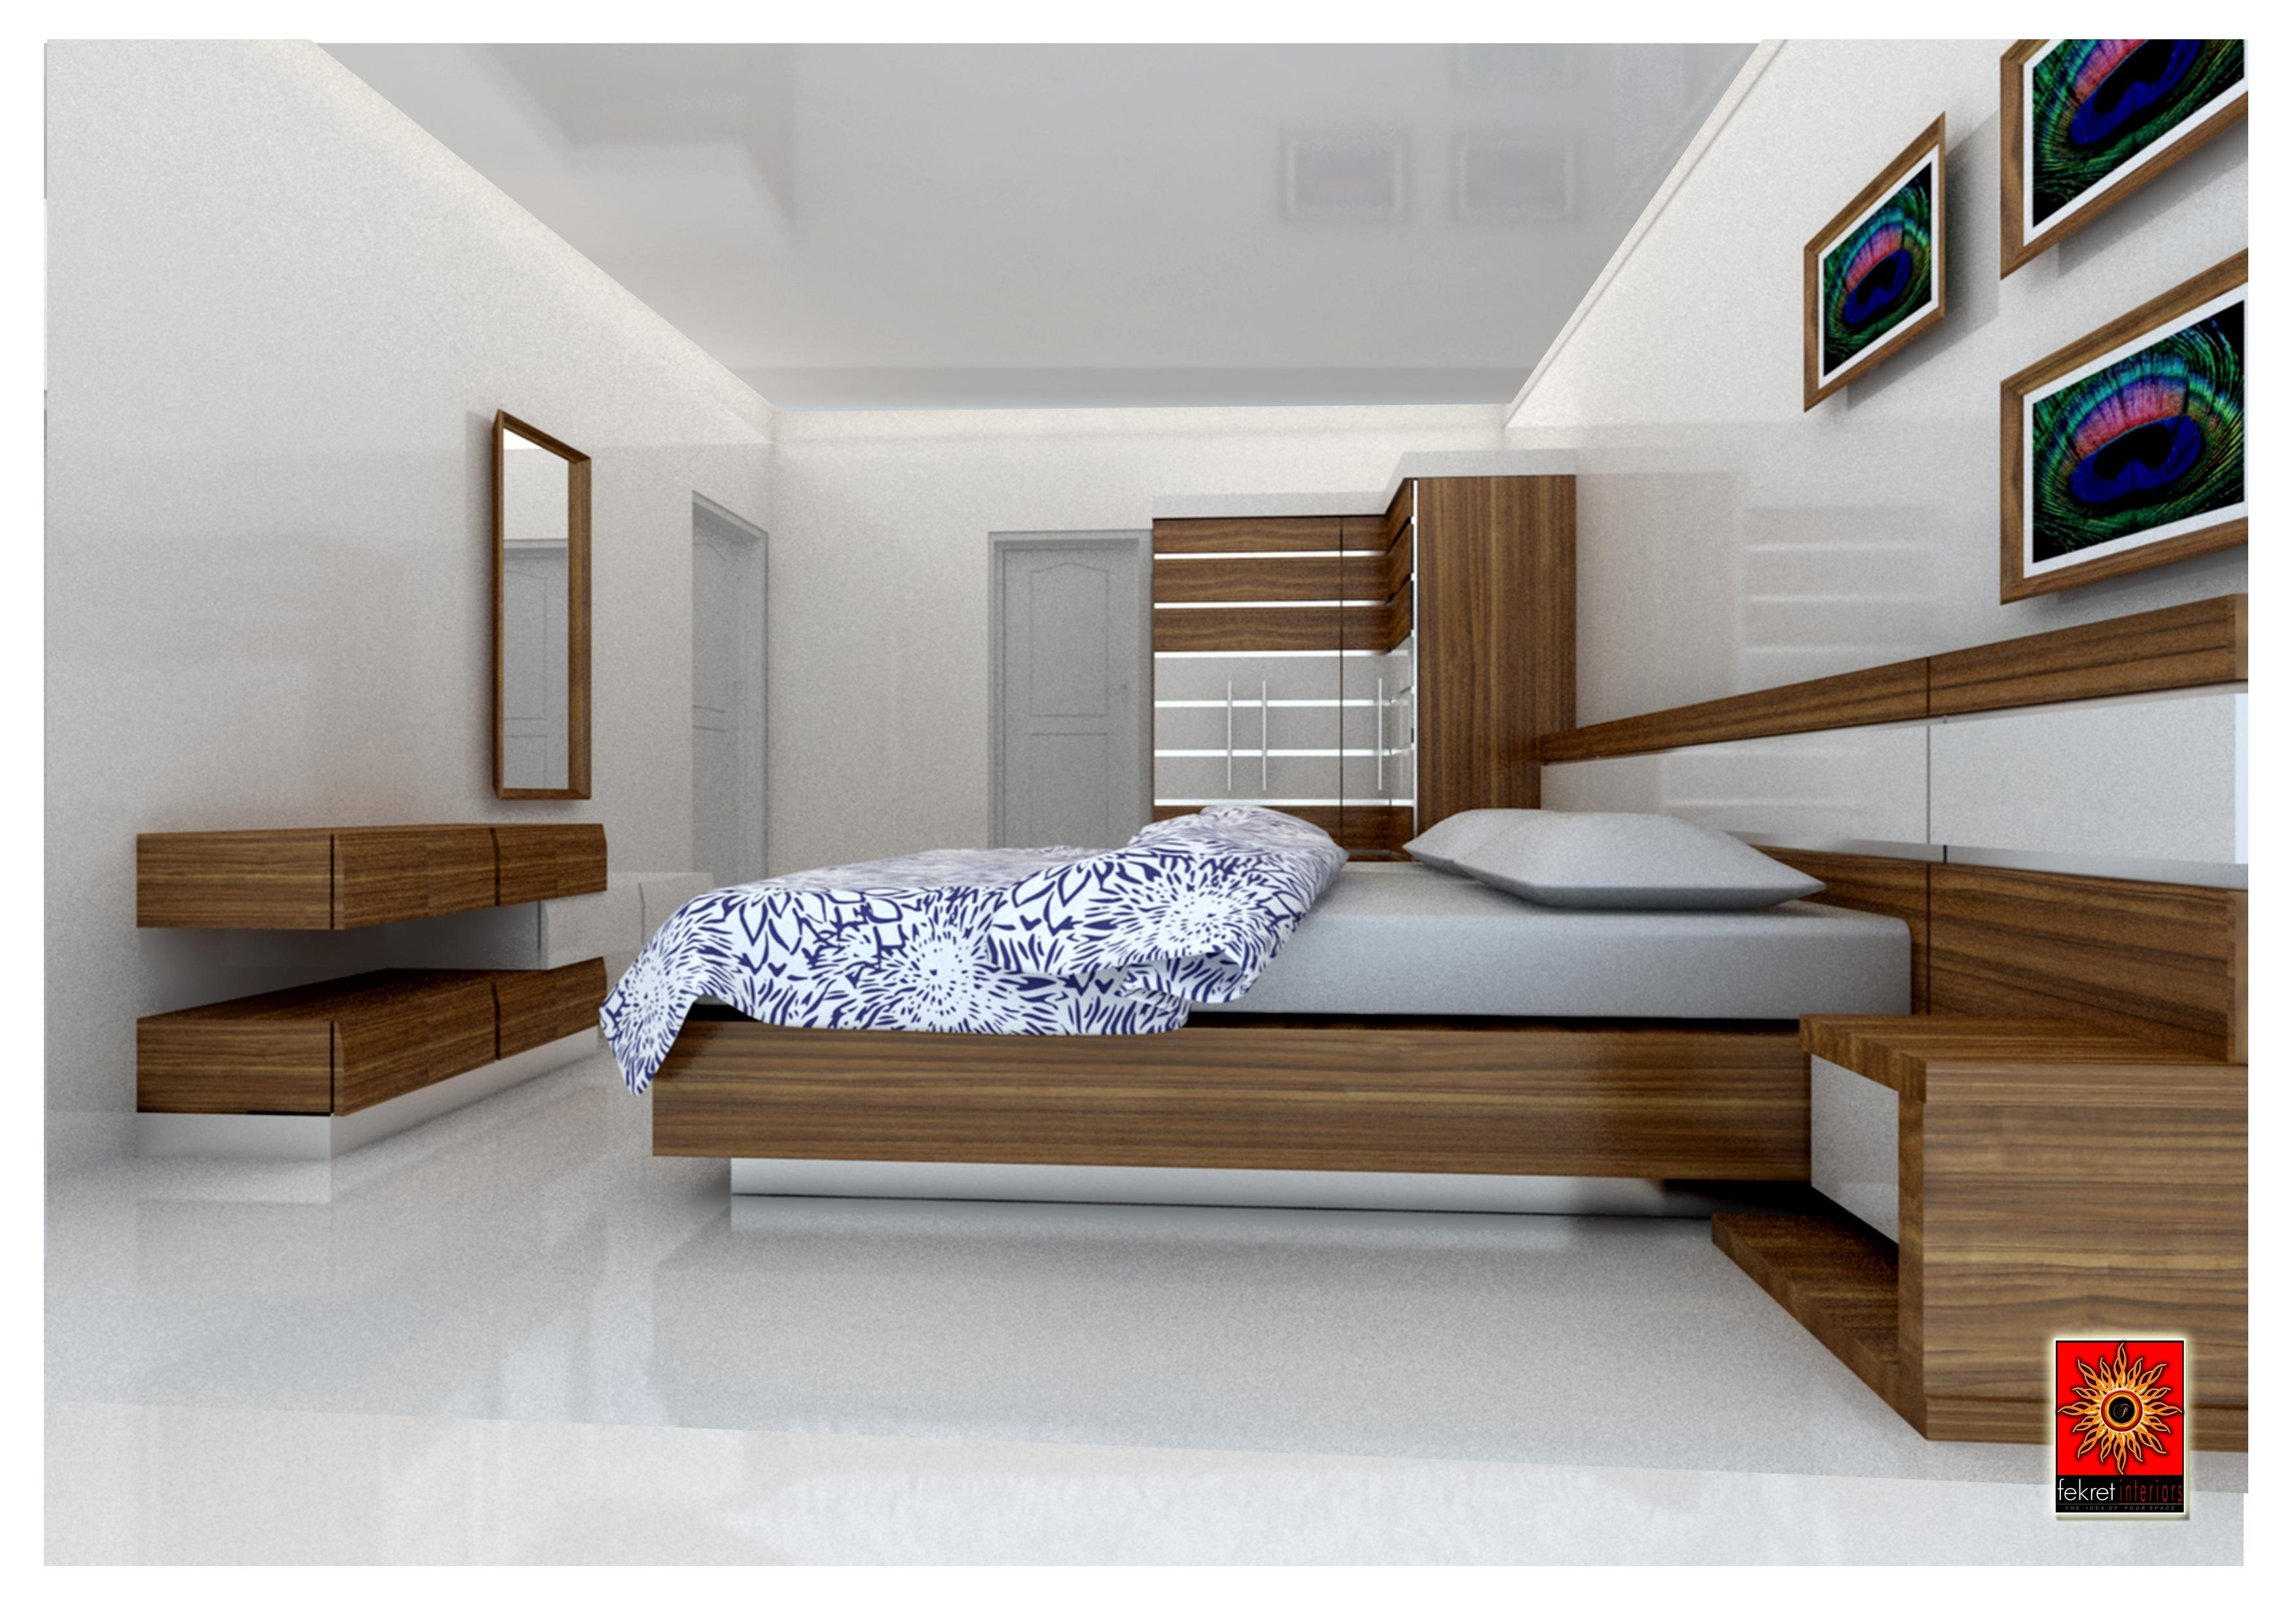 master bedroom interior simple simple bedroom interior gharexpert 474